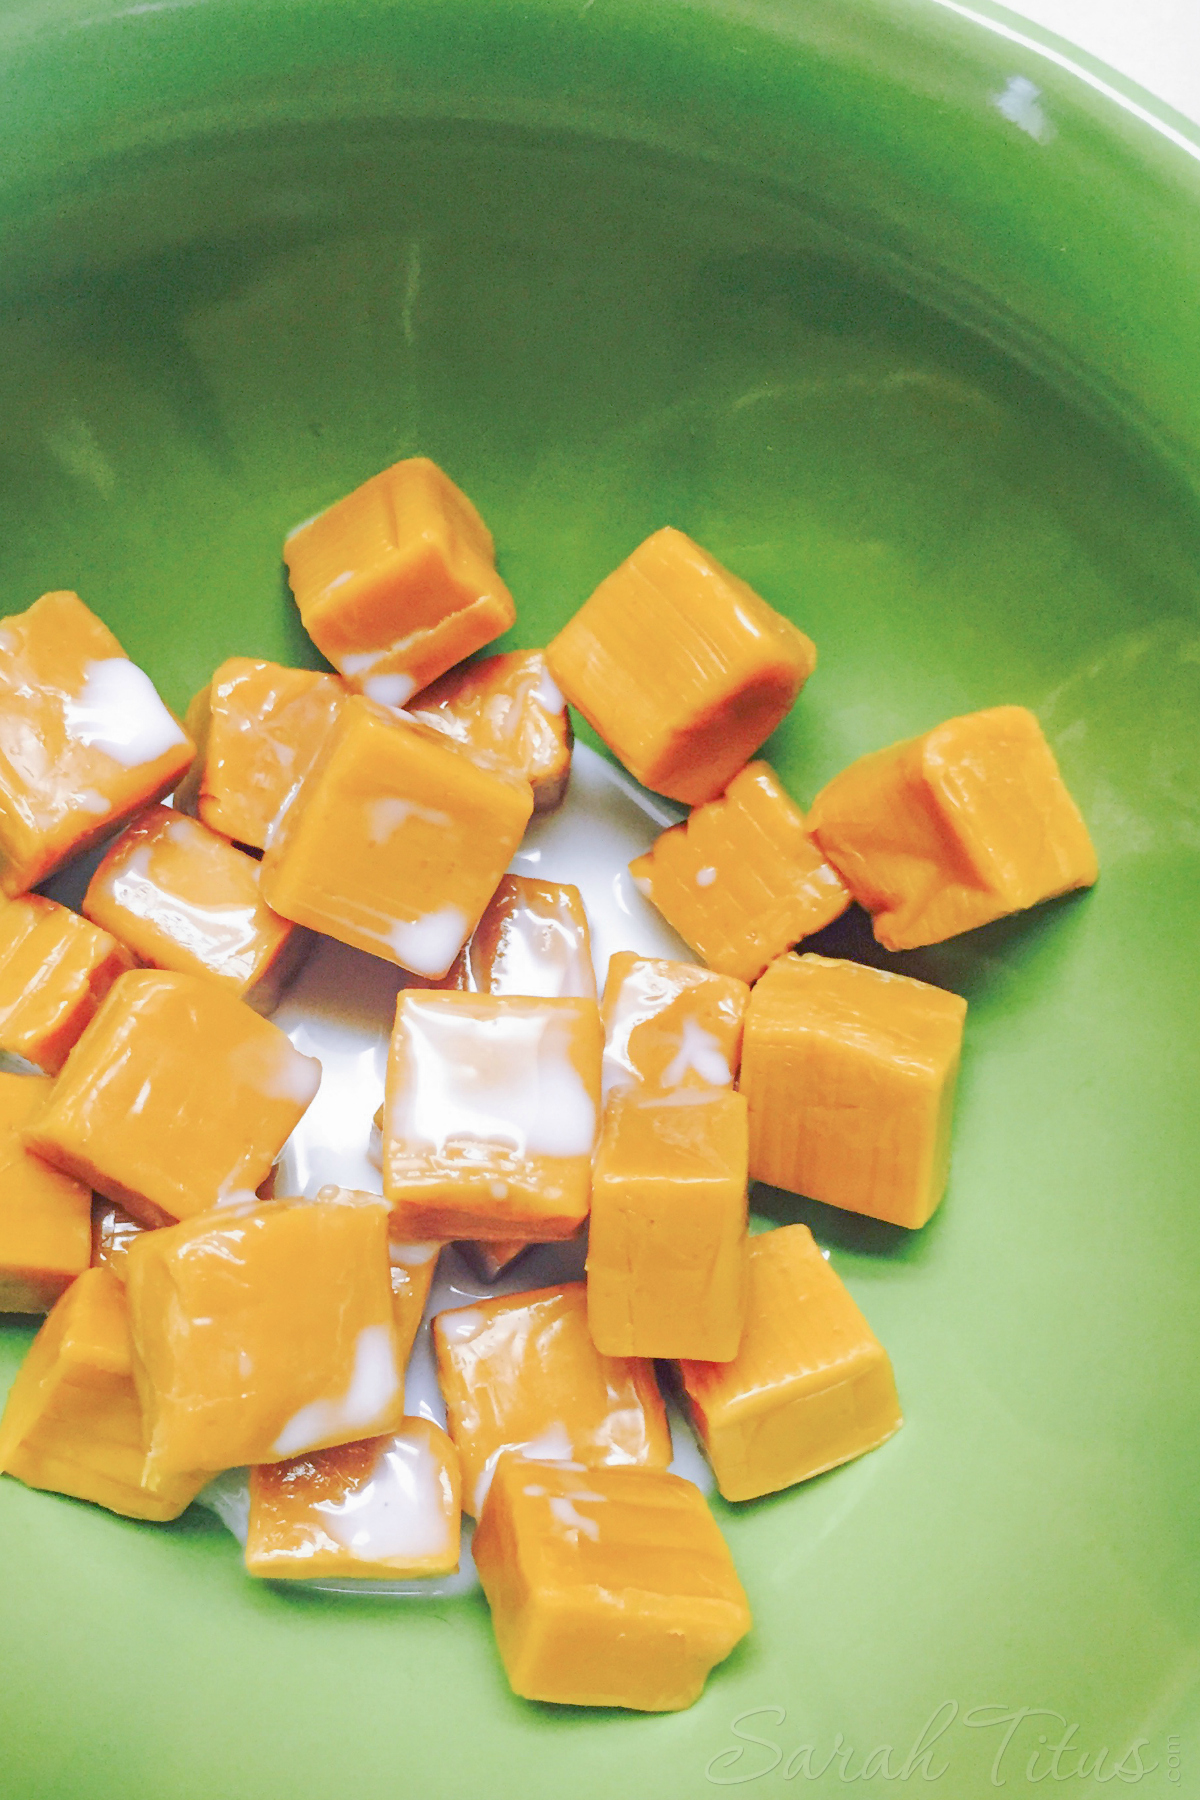 Caramels and milk in a green bowl